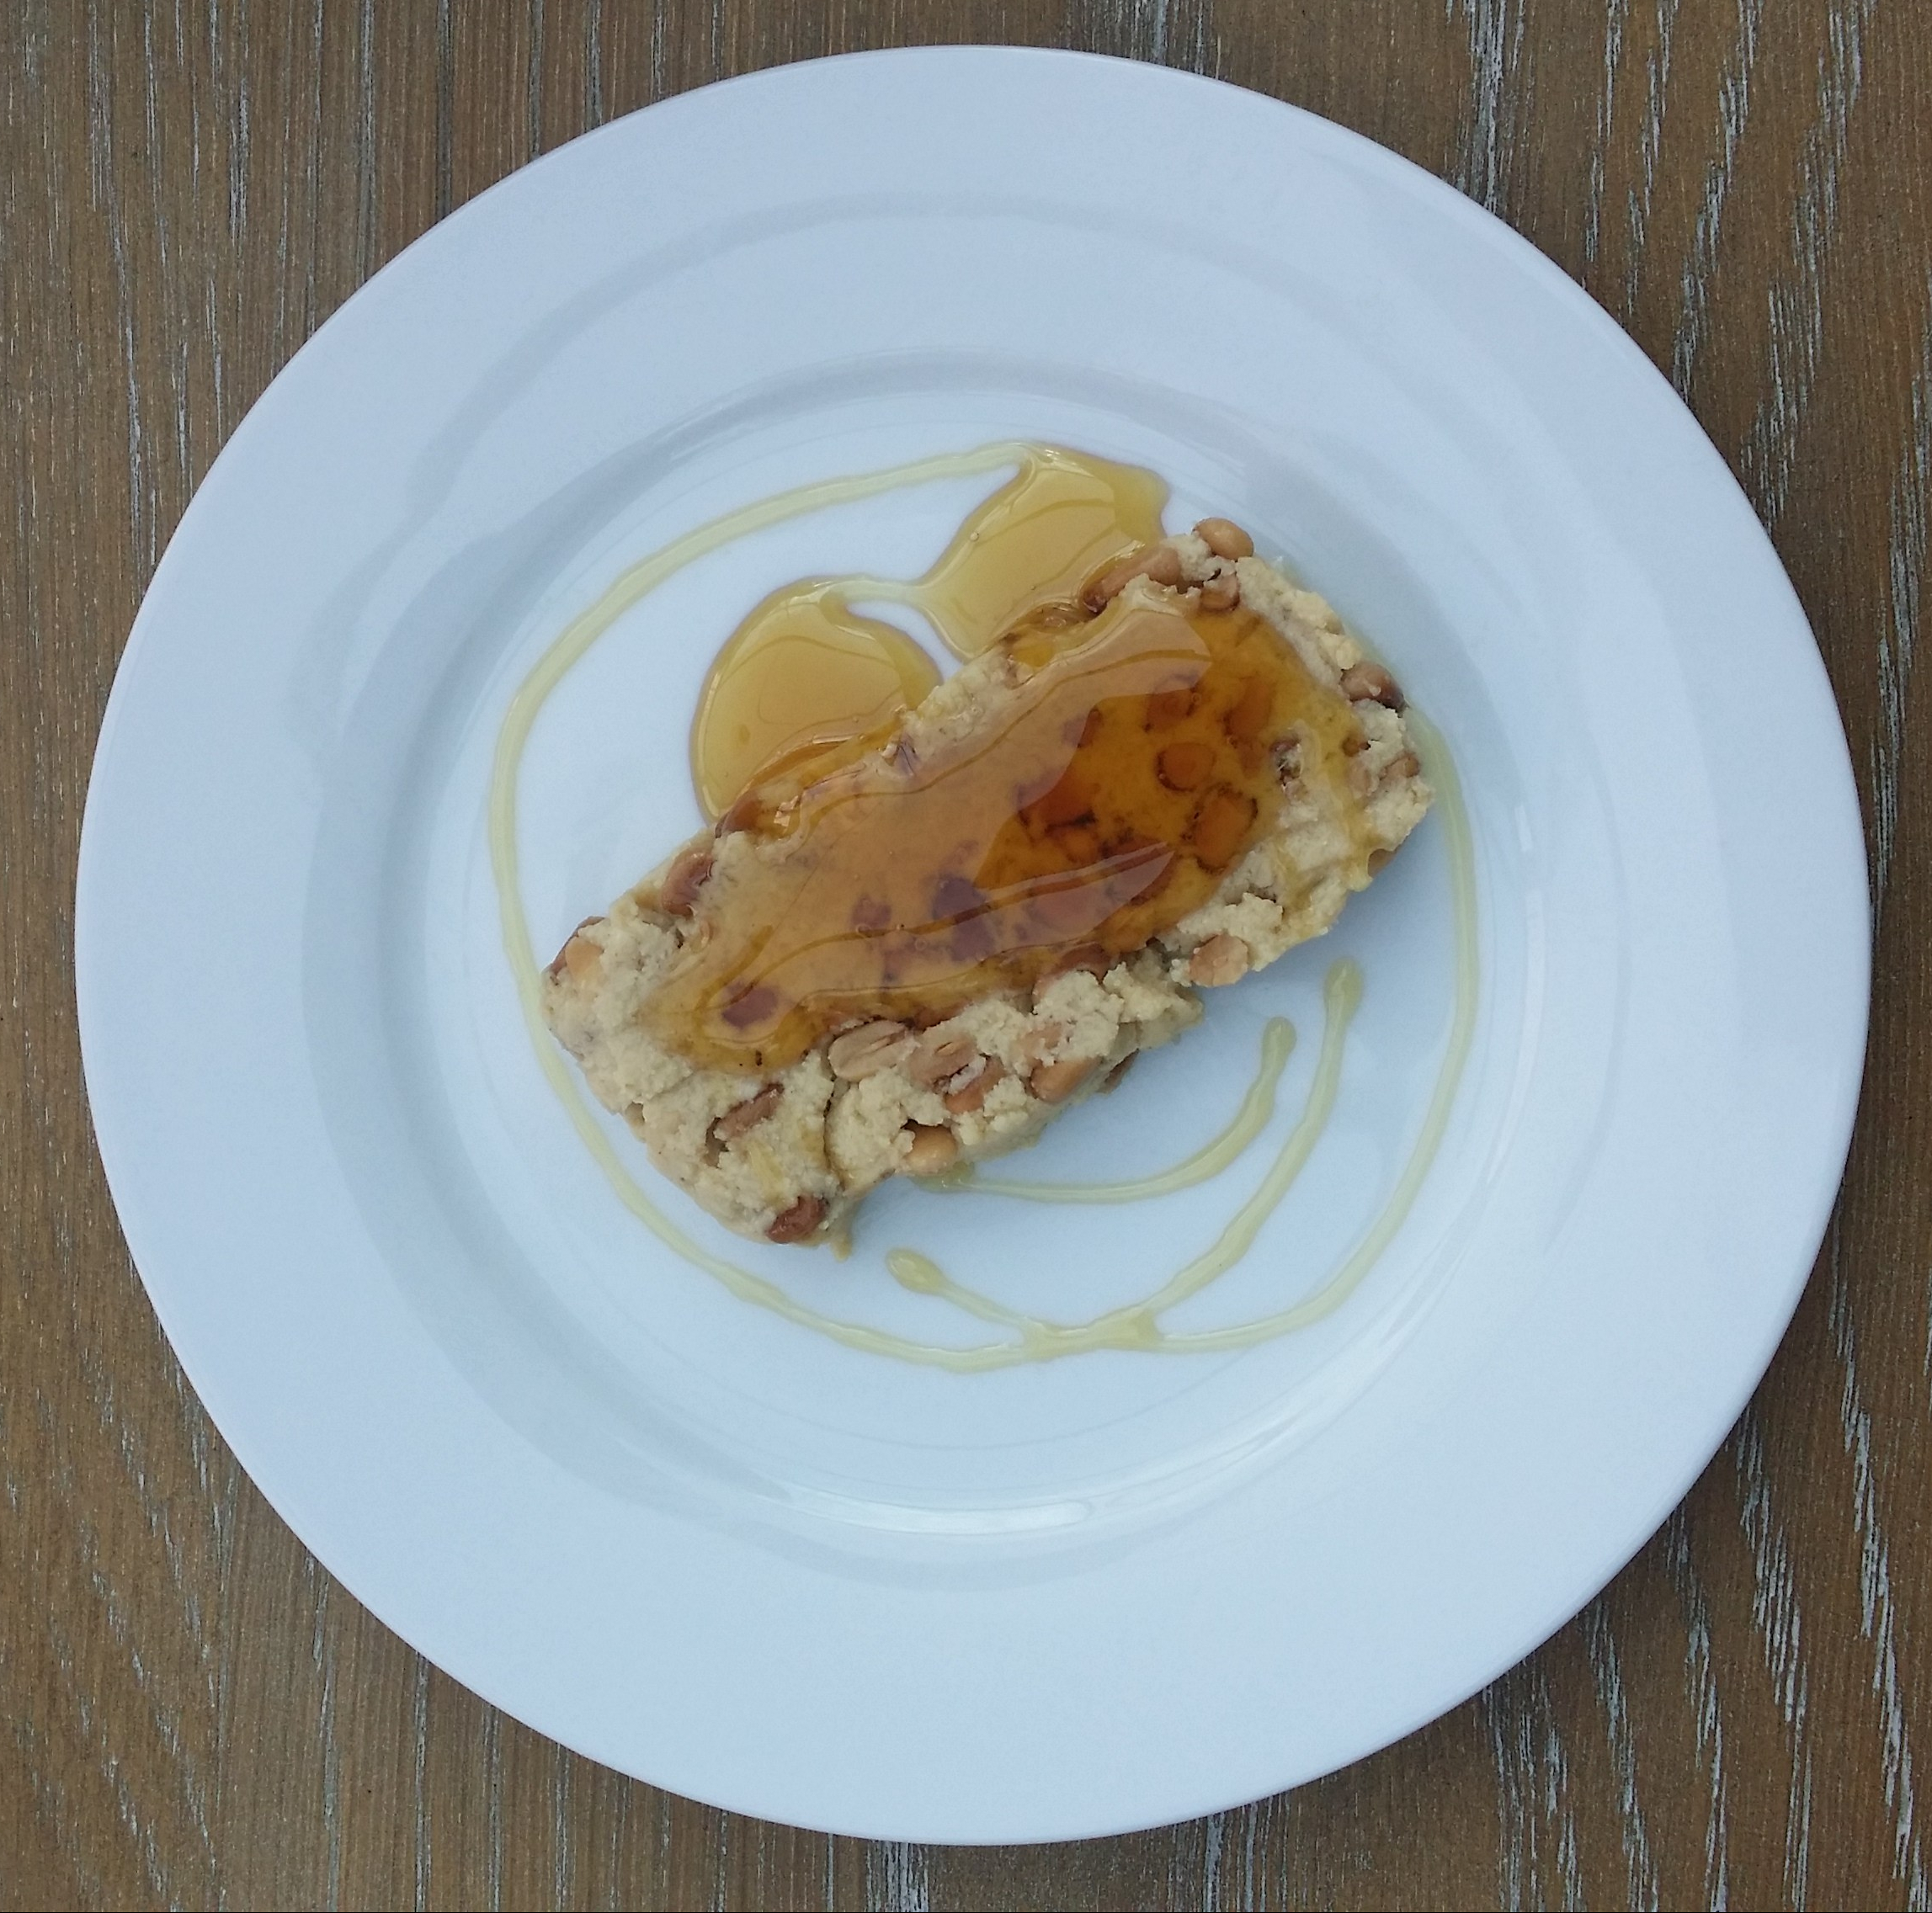 Pynnonade 2, chilled served with honey